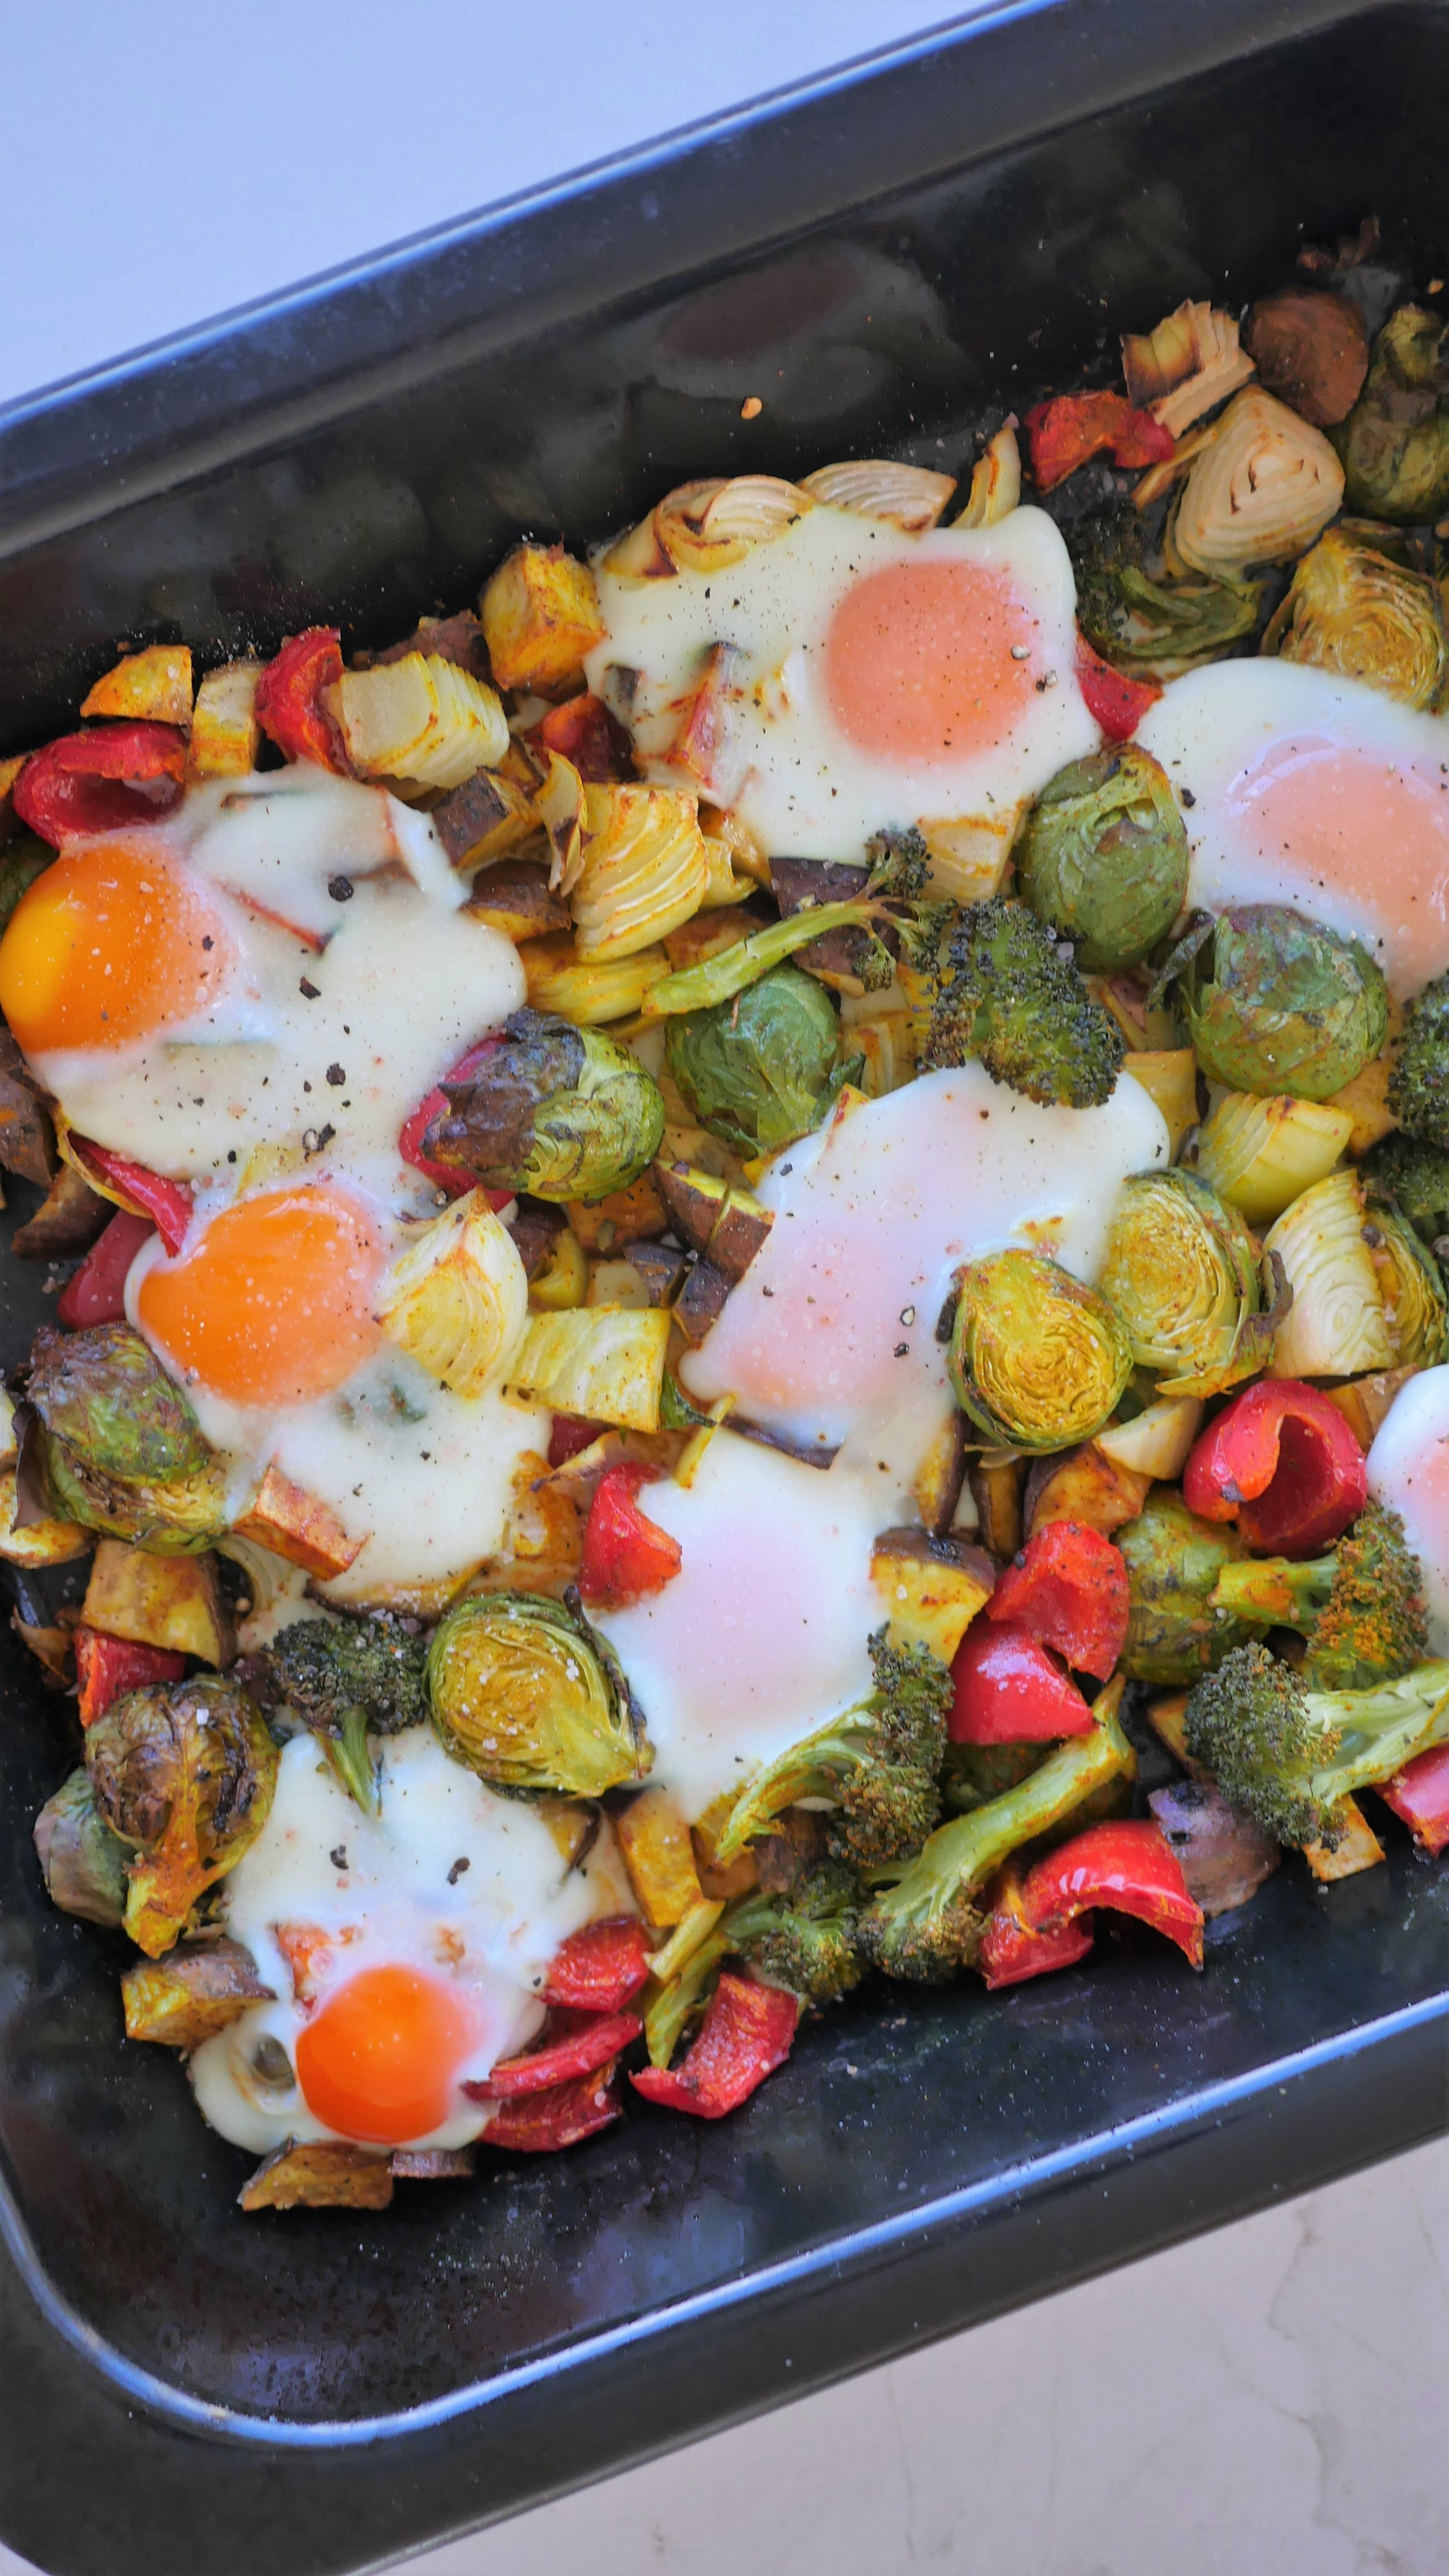 Baked eggs and veggies - one pan meal